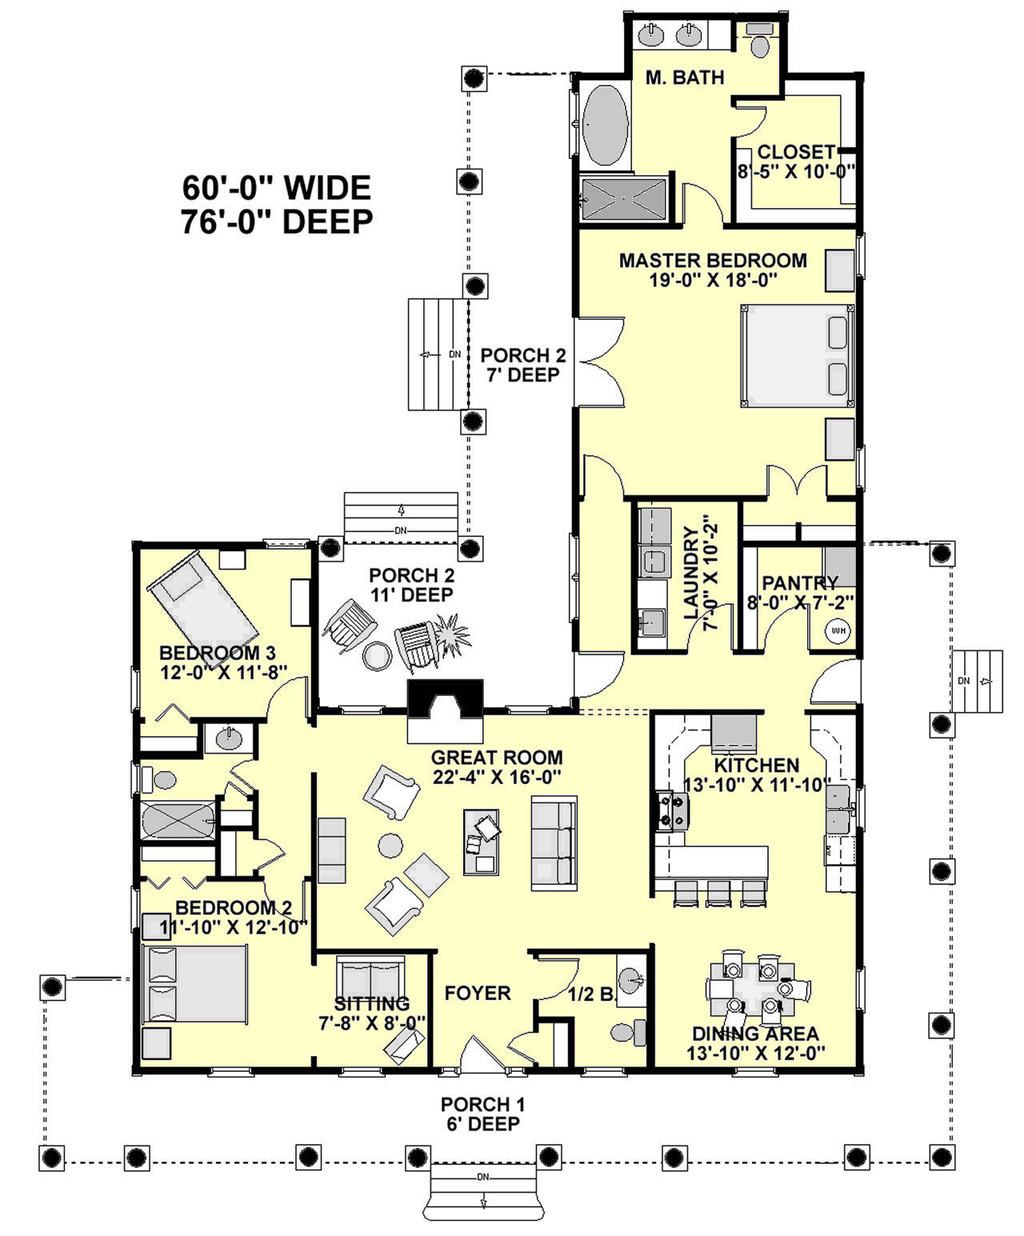 Styles include country house plans, colonial, Victorian, European, and ranch .